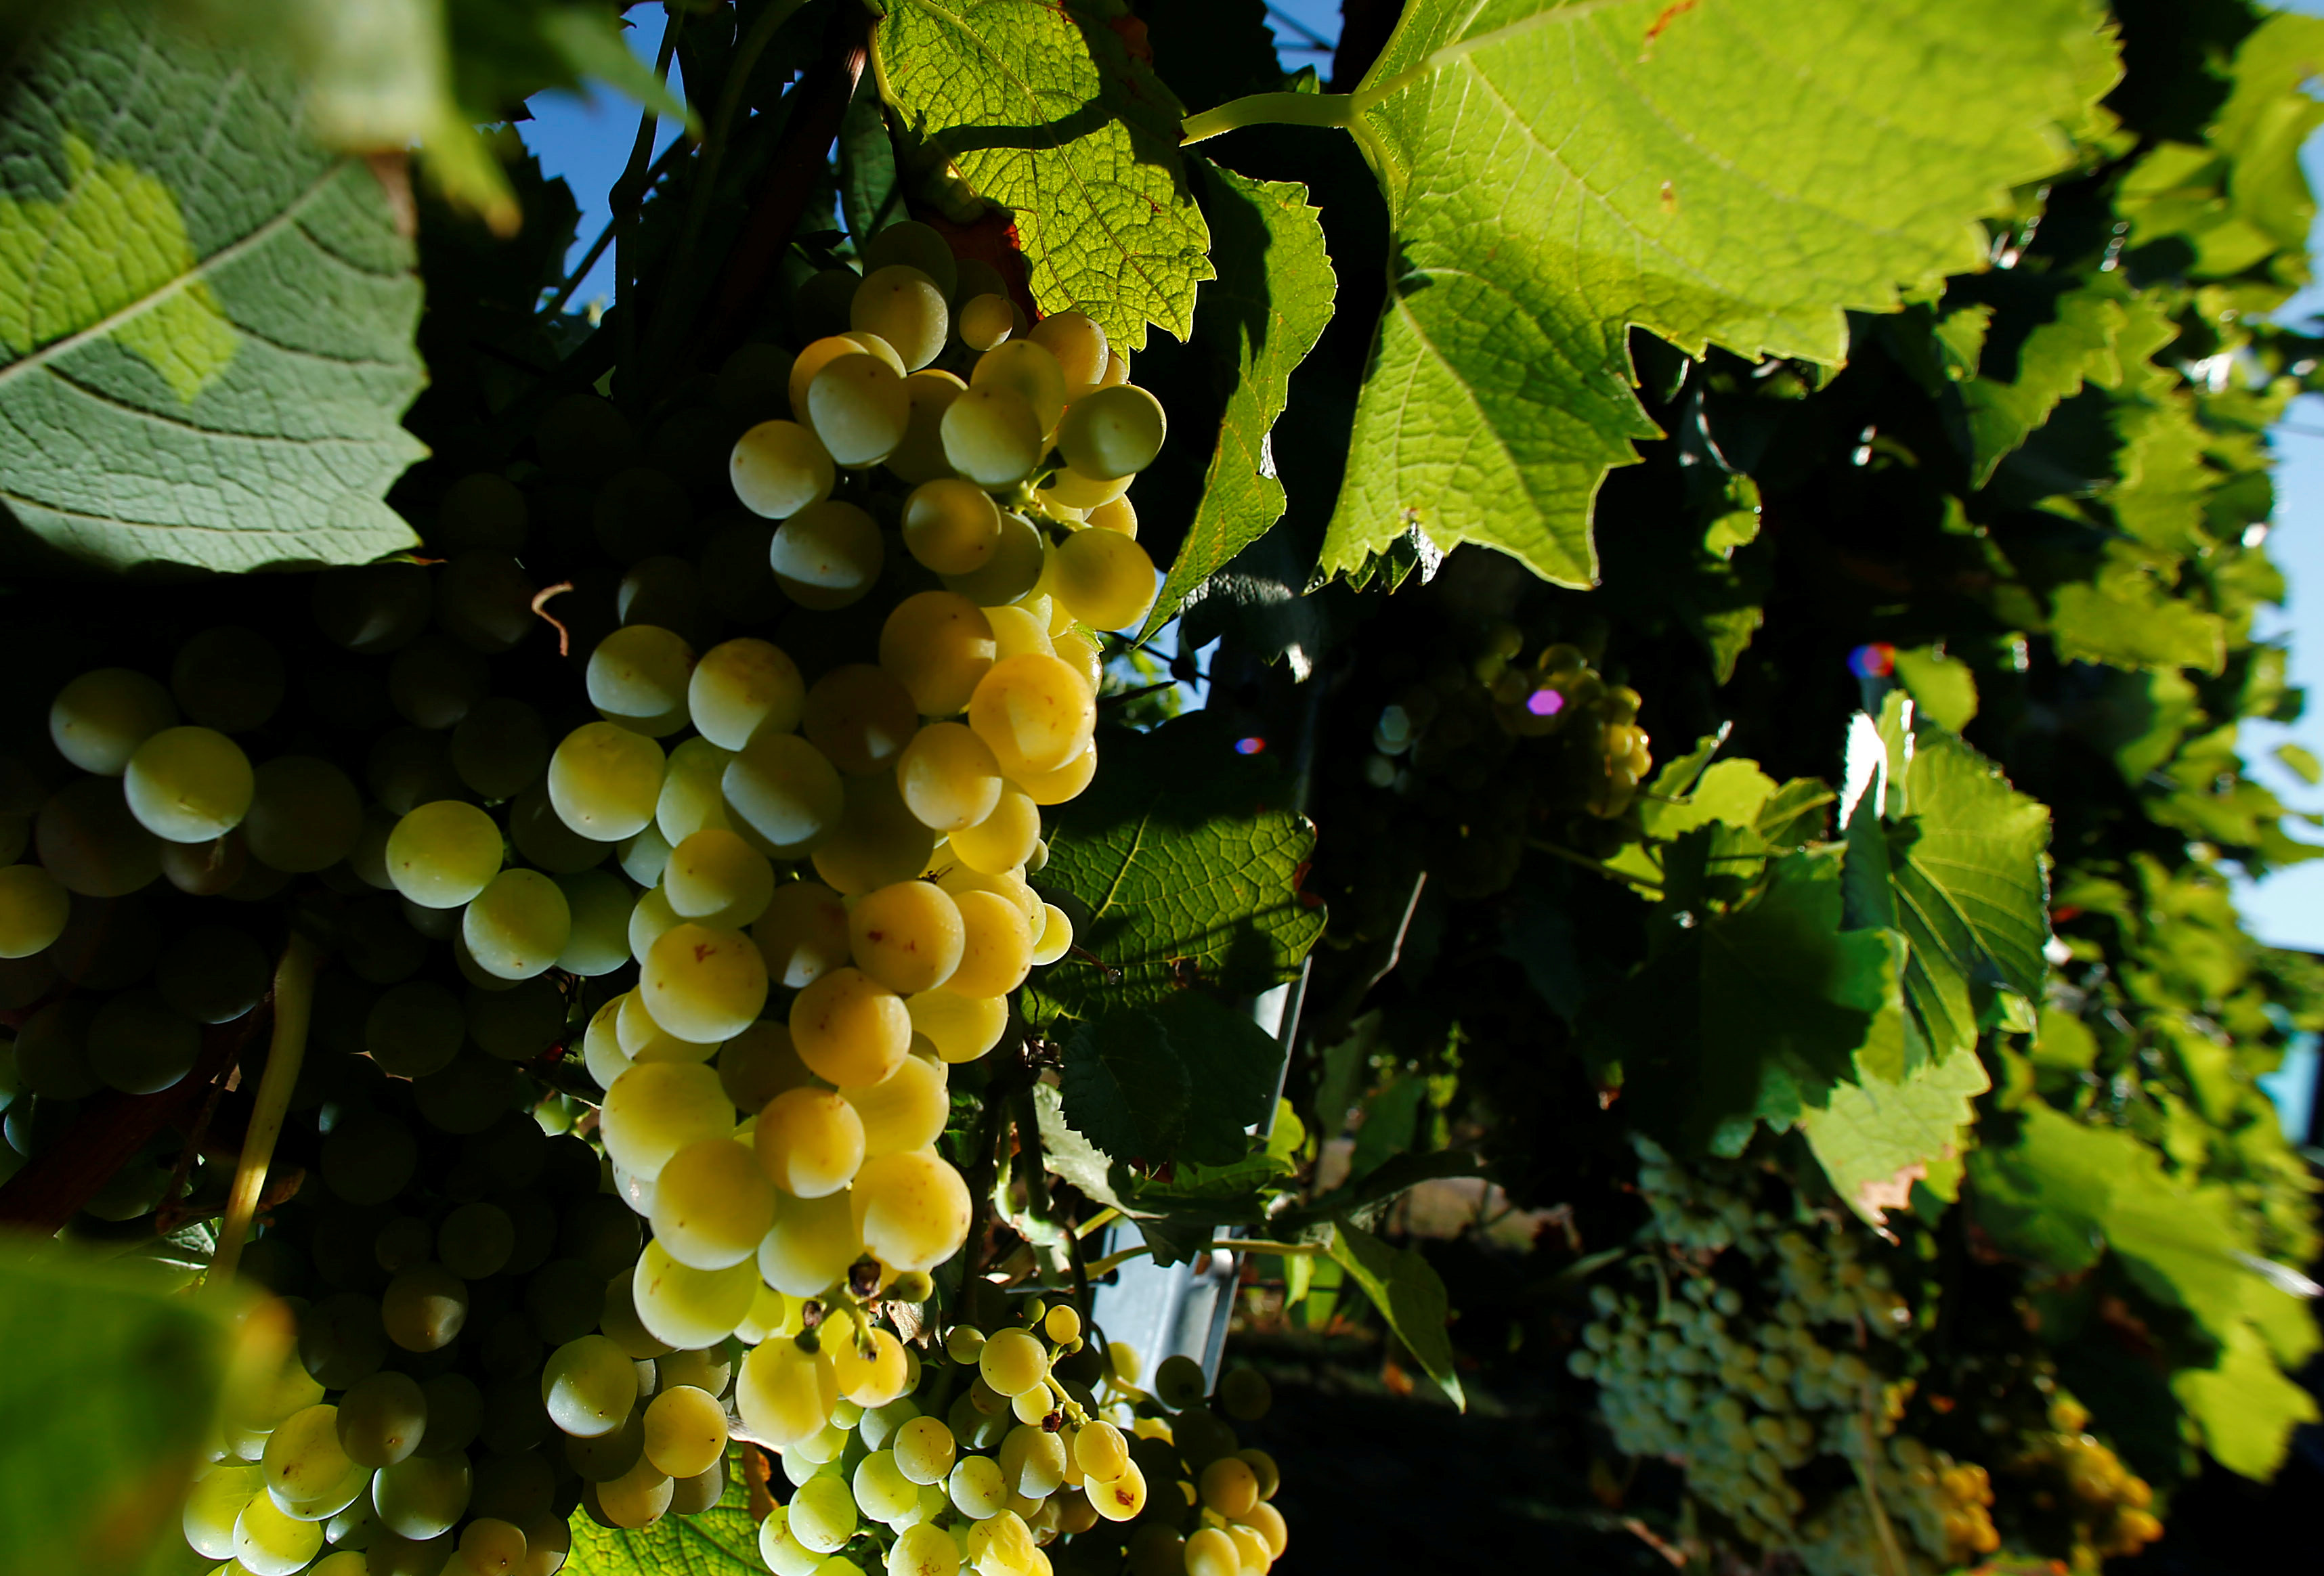 Grapes are pictured during the wine harvest at the vineyard M. R. Mathias Wolf in Loerzweiler